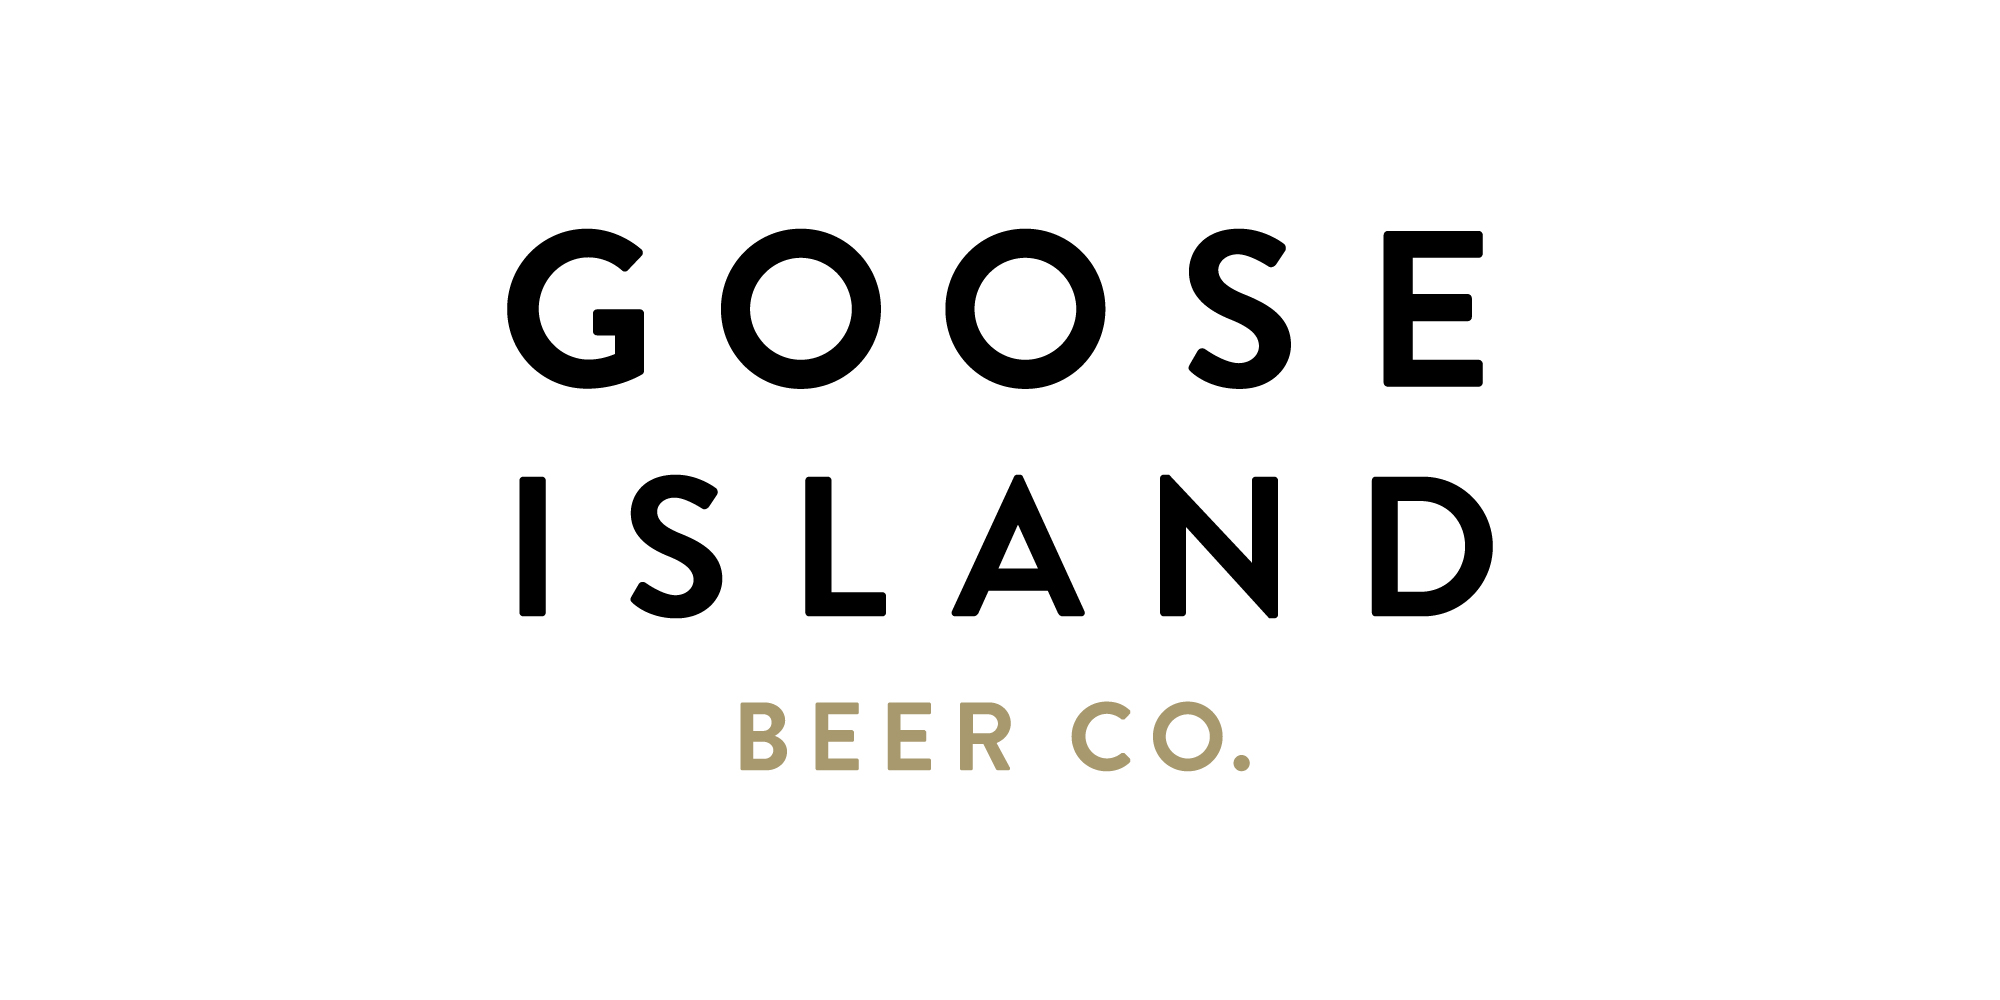 Goose Island sponsor logo for Farm-to-Turntable event by Herban Produce of Chicago, Illinois.